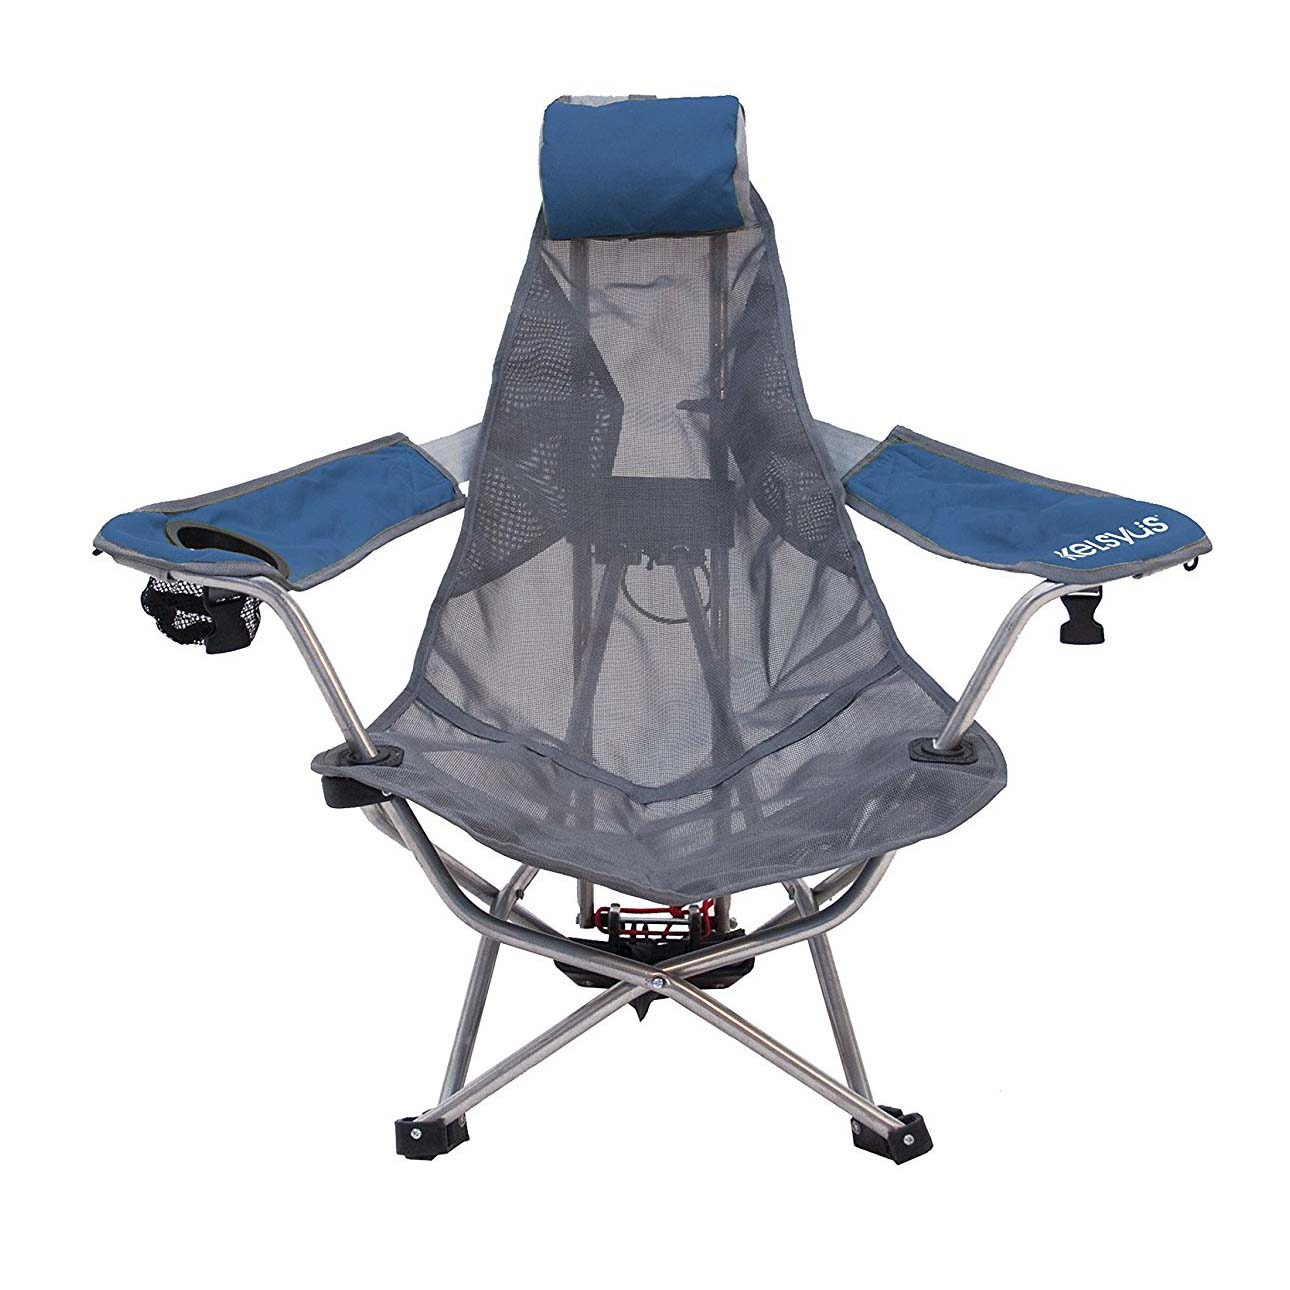 Kelsyus Mesh Folding Backpack Beach Chair With Headrest Blue AND Gray